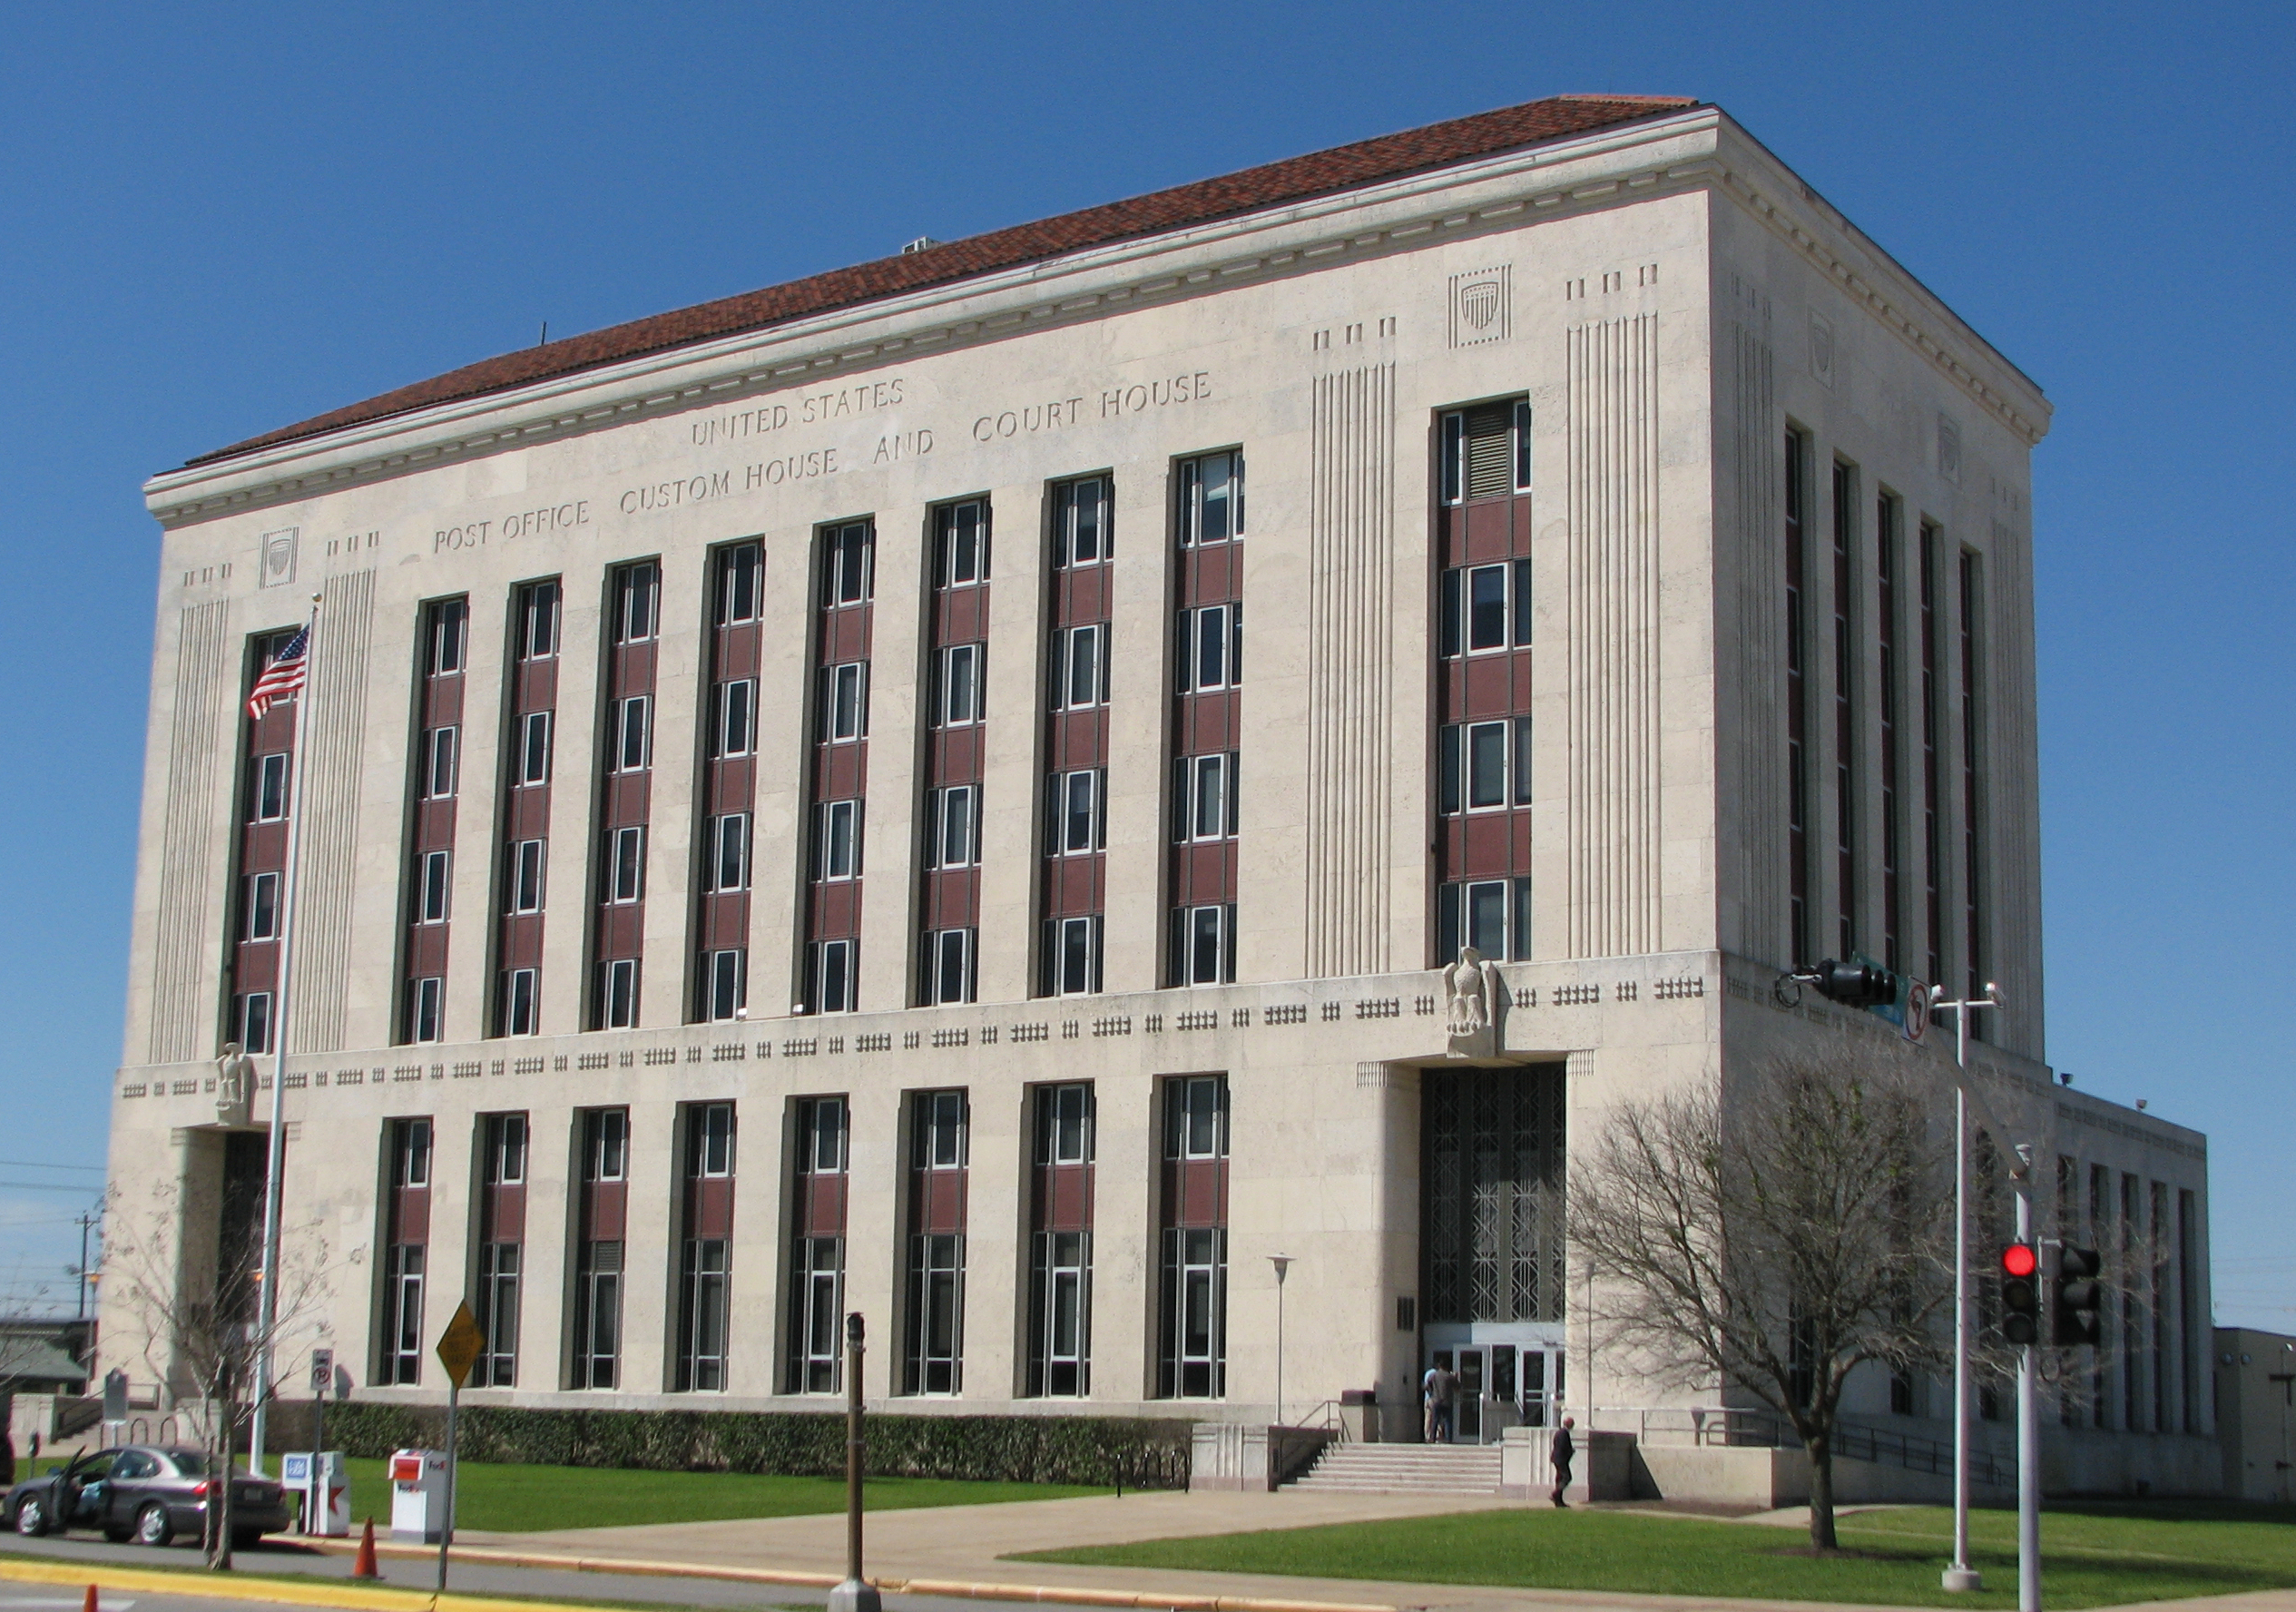 Federal Building Services : United states postal service